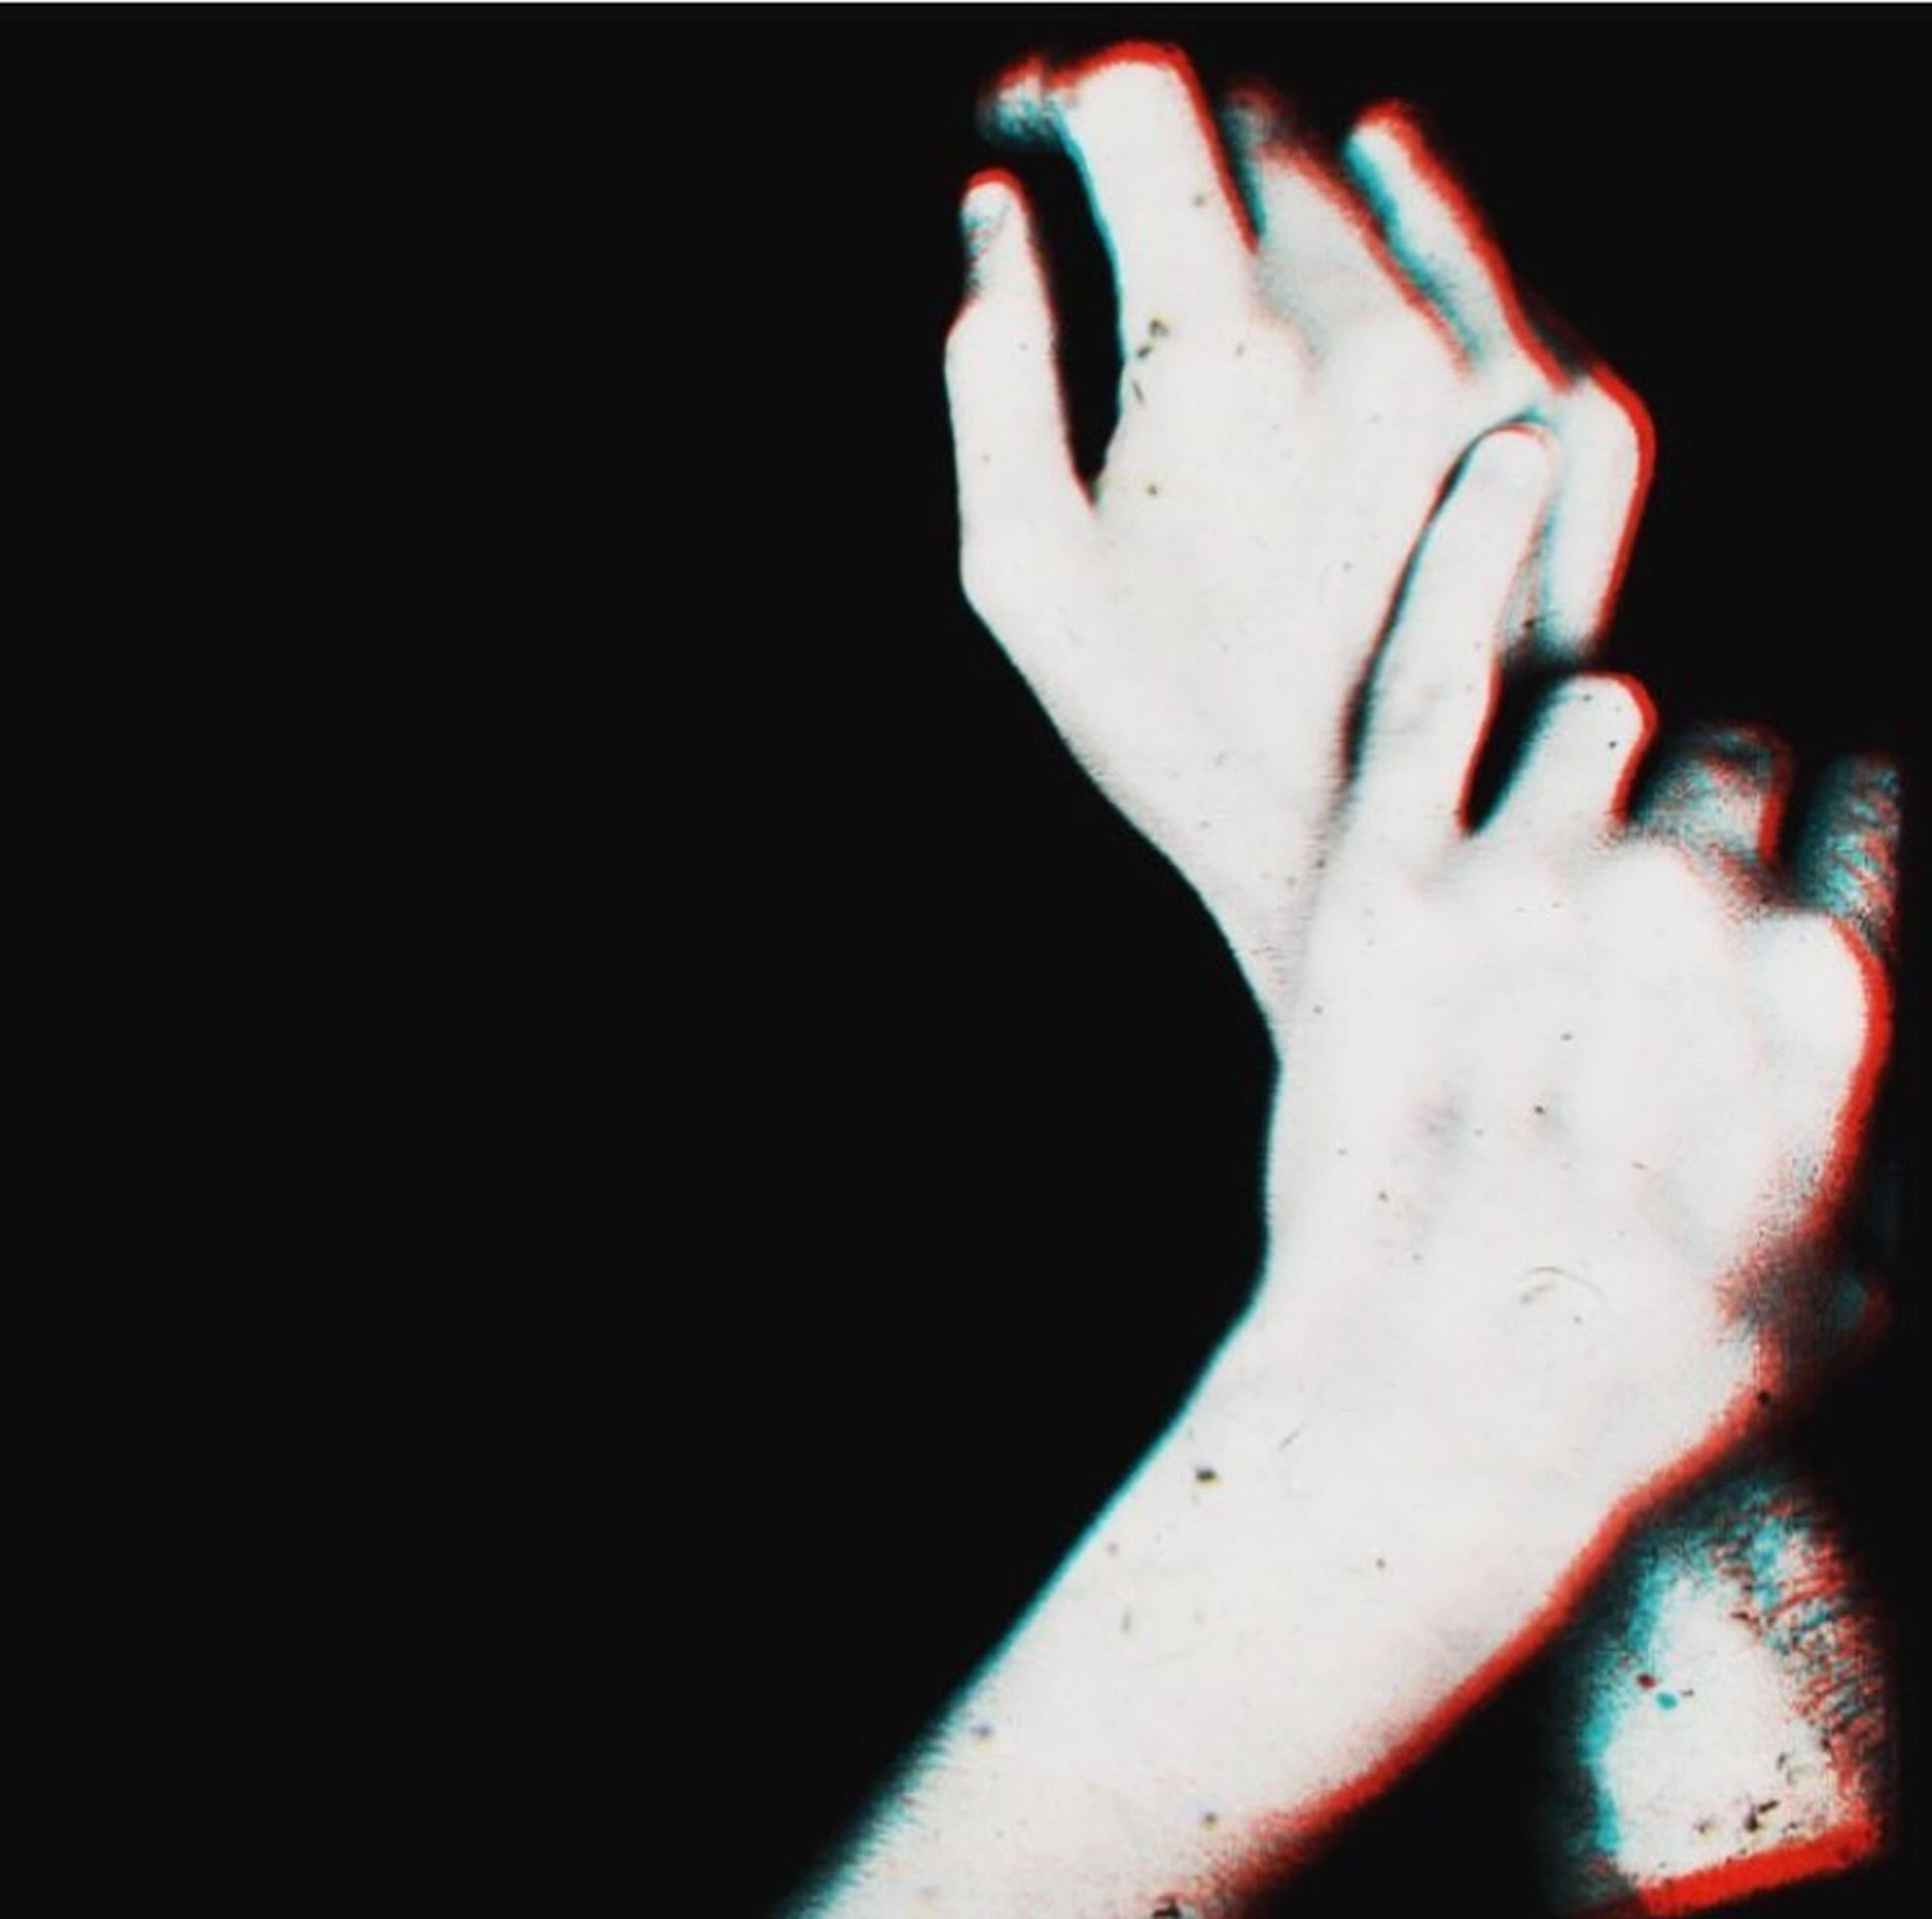 black background, one person, human body part, close-up, adults only, one woman only, pain, people, adult, human hand, day